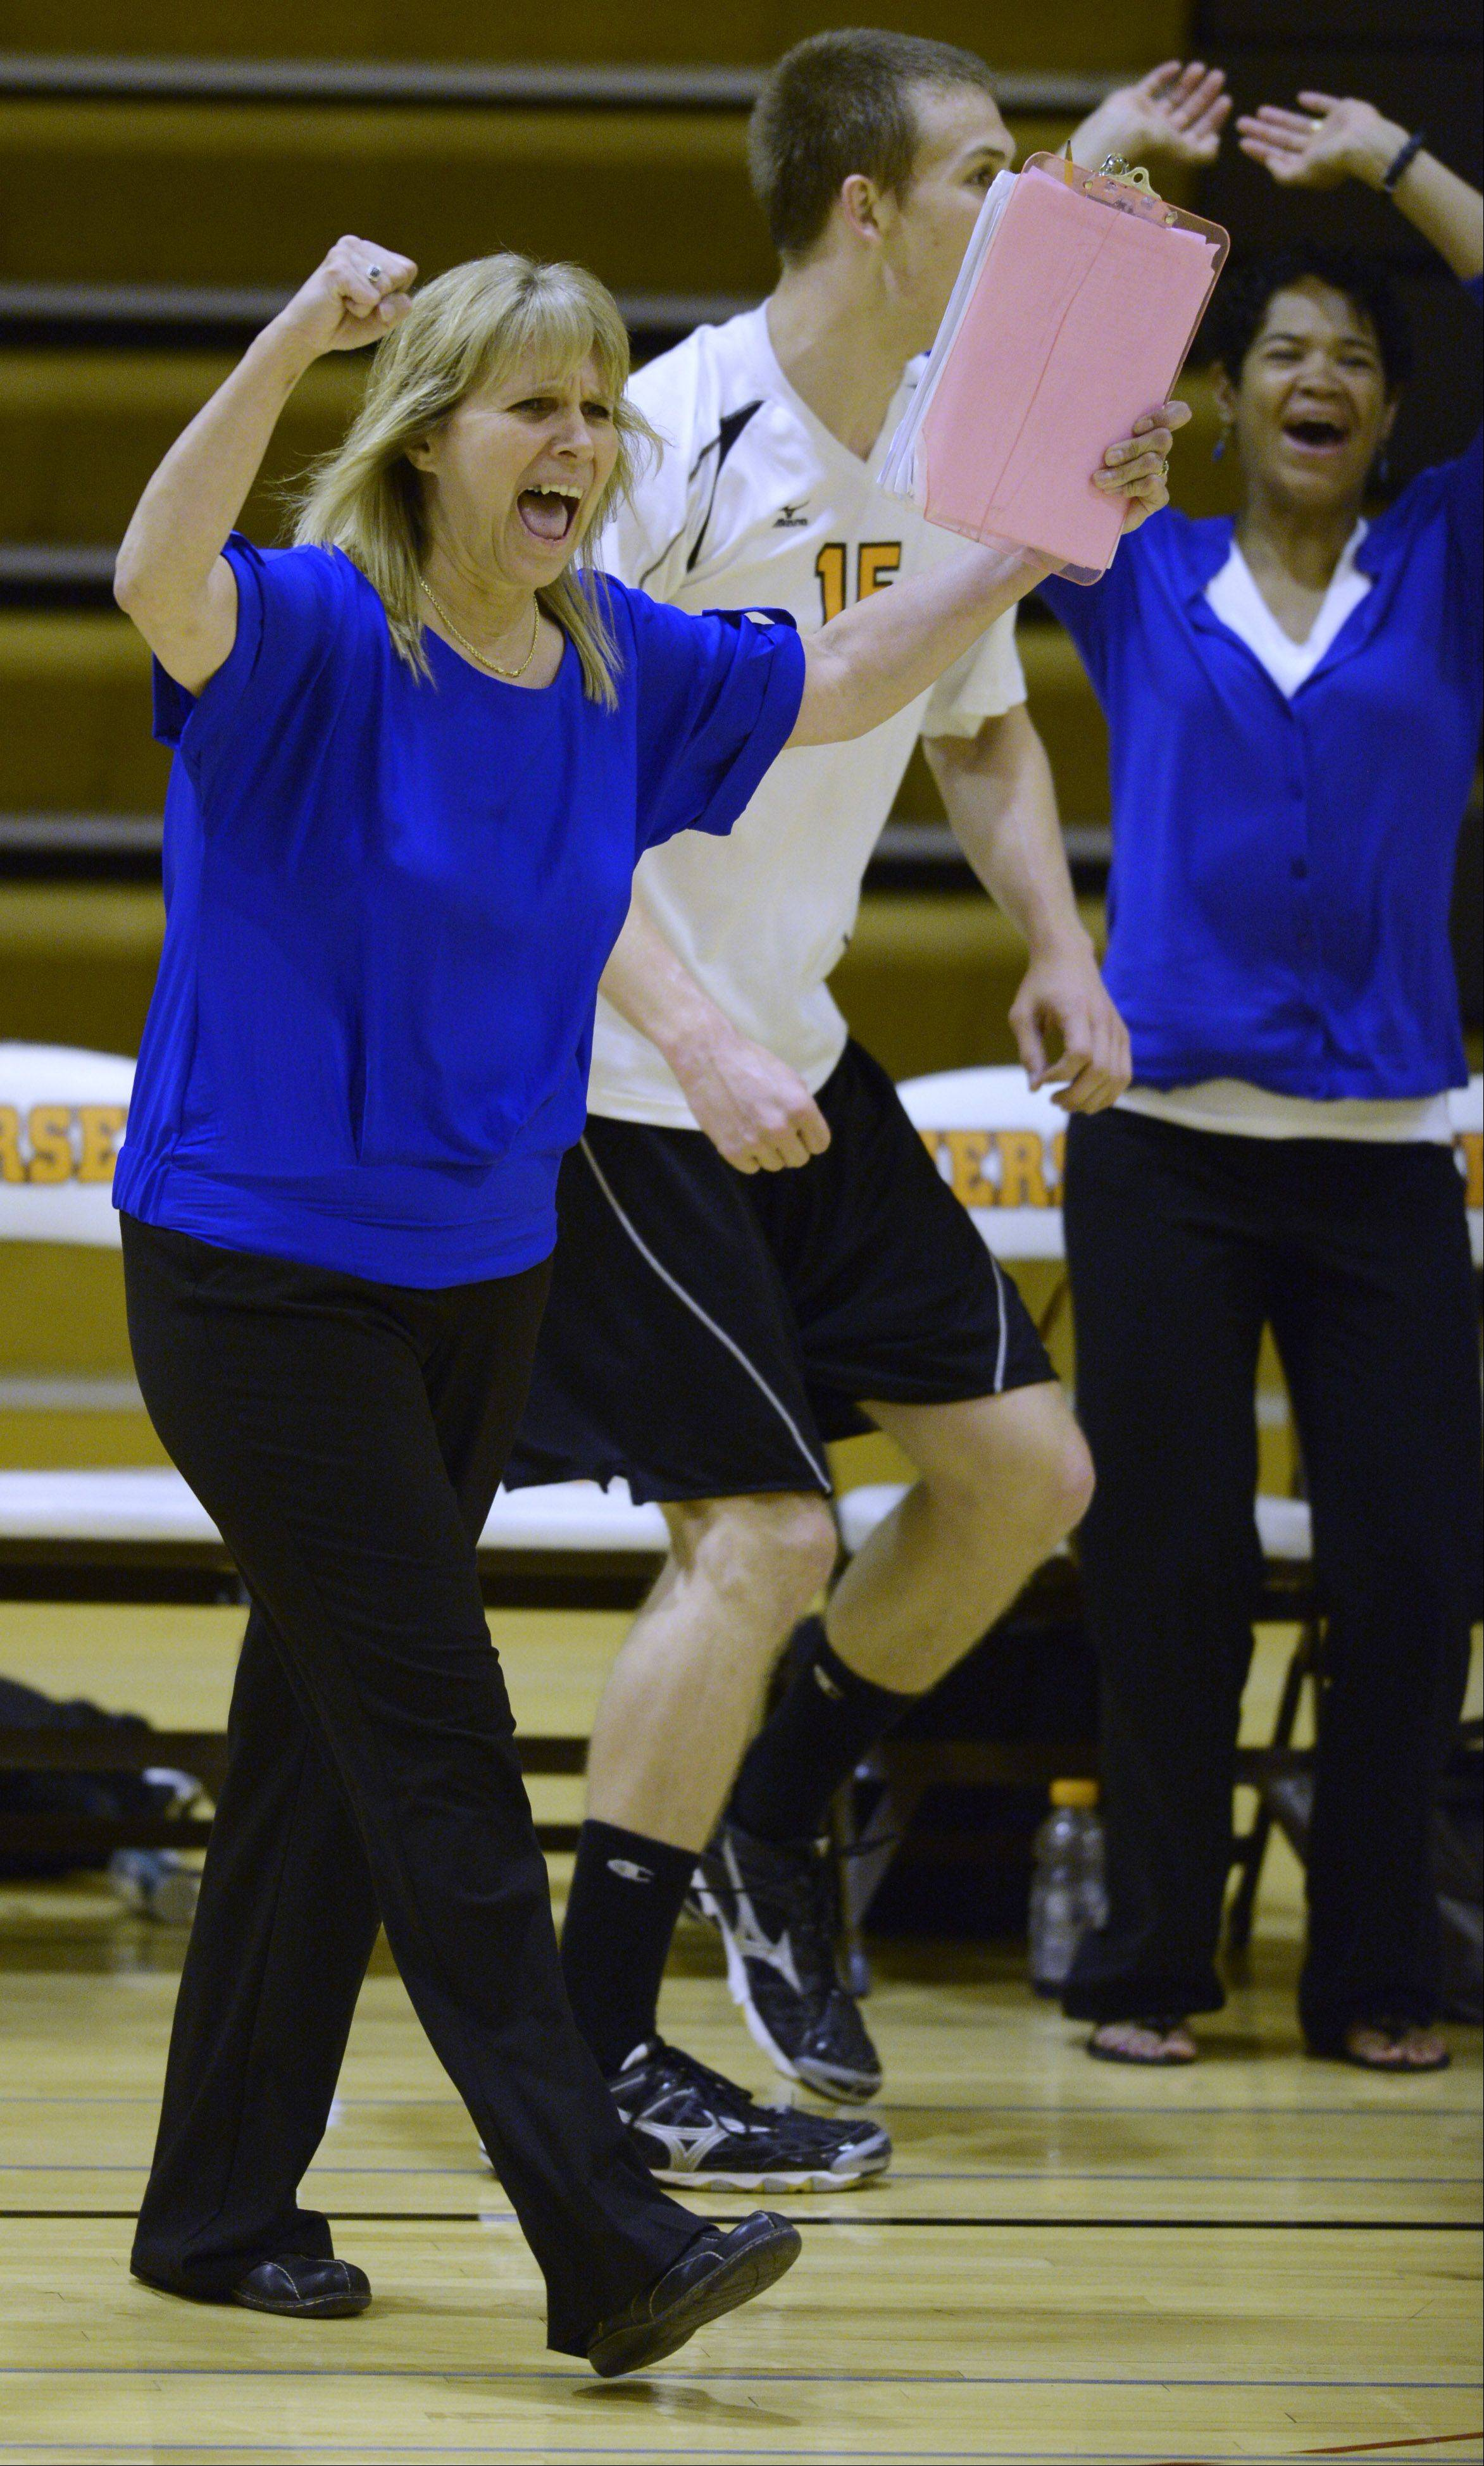 Hersey boys volleyball coach Nancy Lill celebrates a hard-fought point by her team during Wednesday's match against Glenbrook North in Arlington Heights.